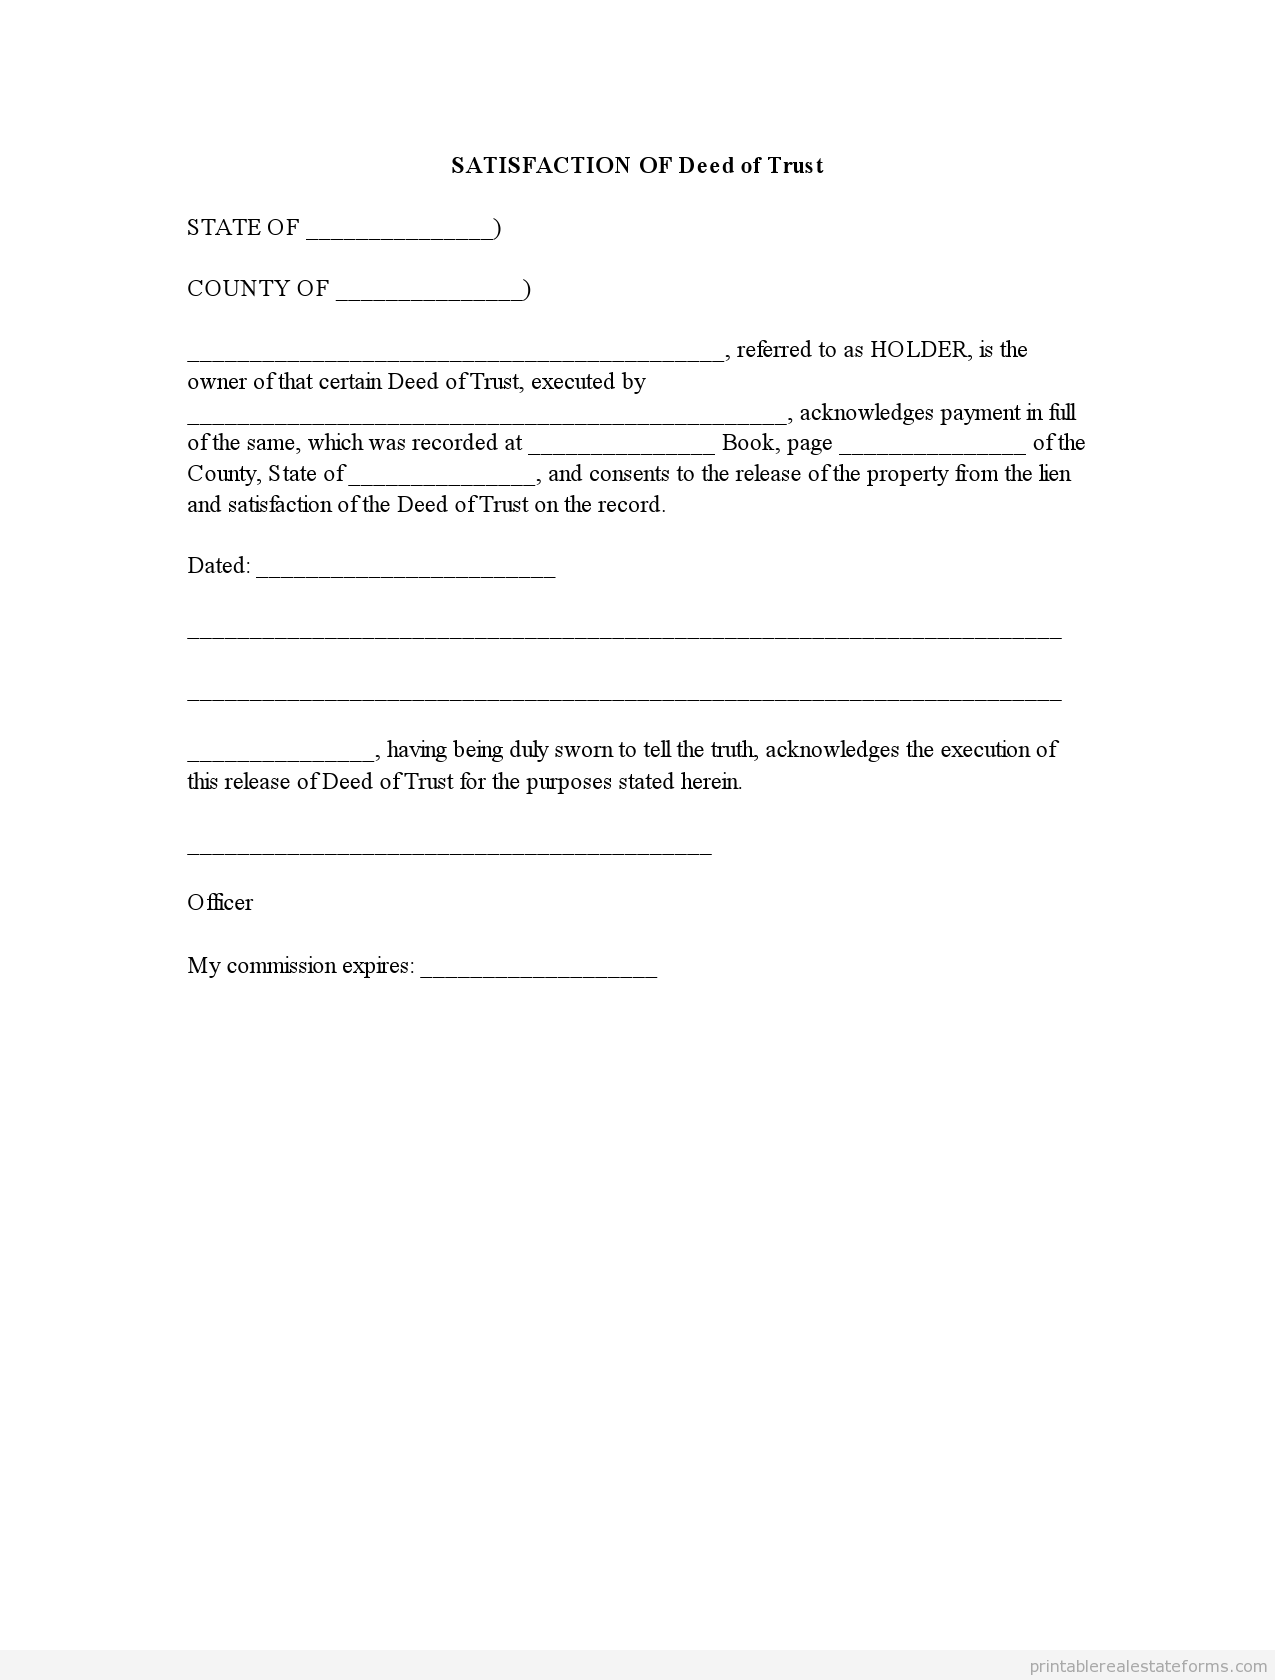 Sample Printable Satisfaction Of Deed Of Trust Form Real Estate Forms Legal Forms Real Estate Templates